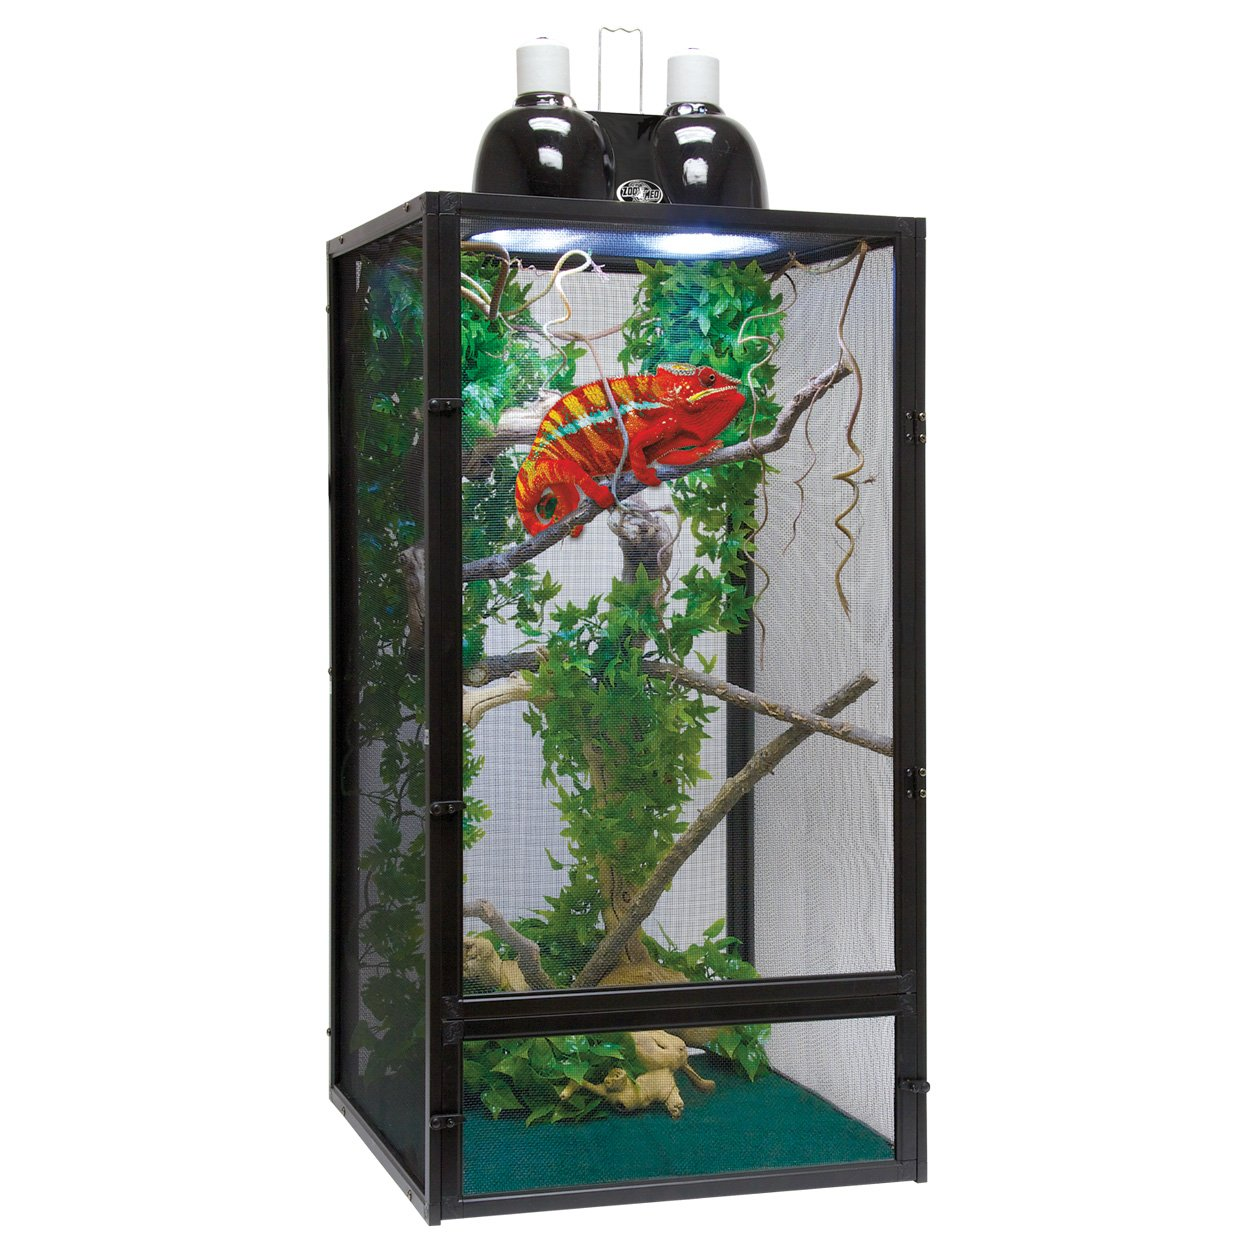 Zoo Med reptibreeze Chameleon Kit: Zoo Med: Amazon.es: Productos ...